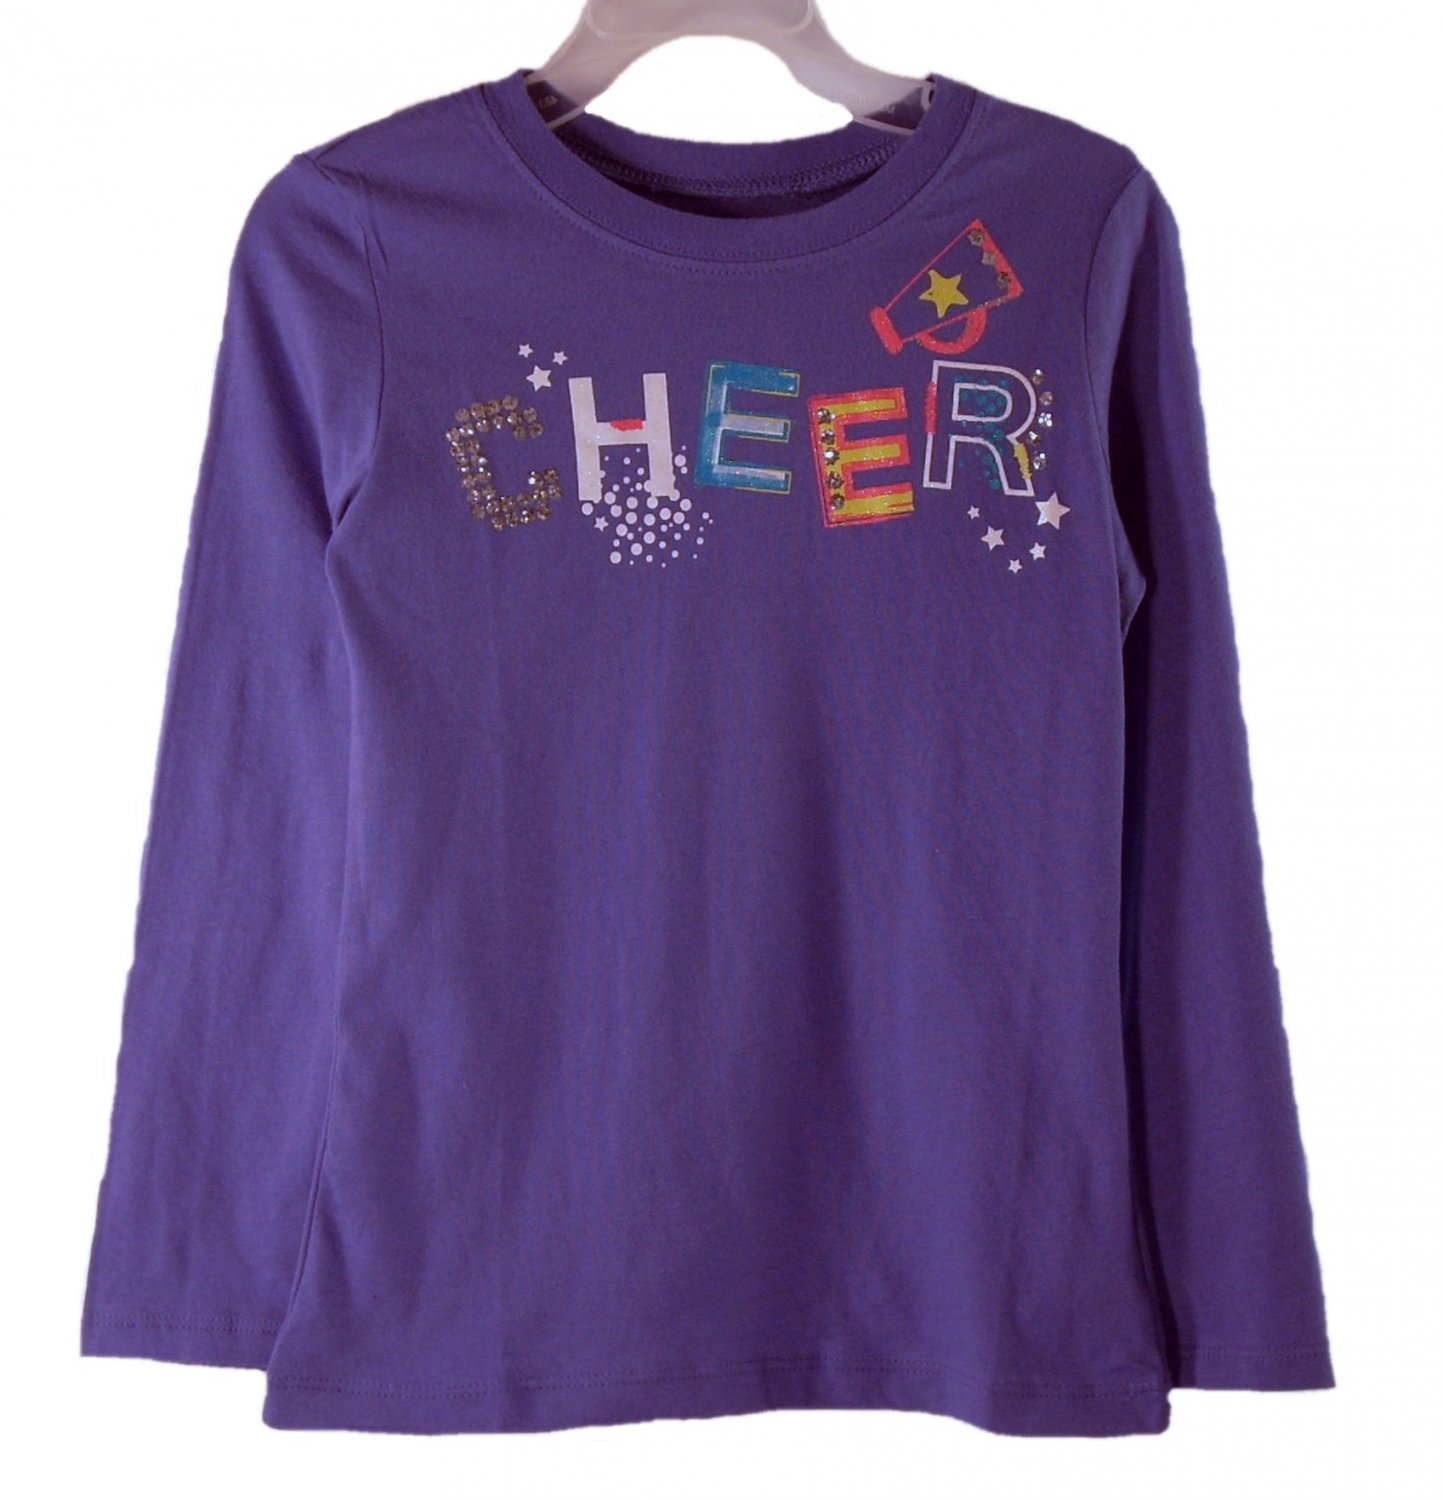 The Children's Place Kids Girl's Purple Cheer Long Sleeve T-Shirt Small